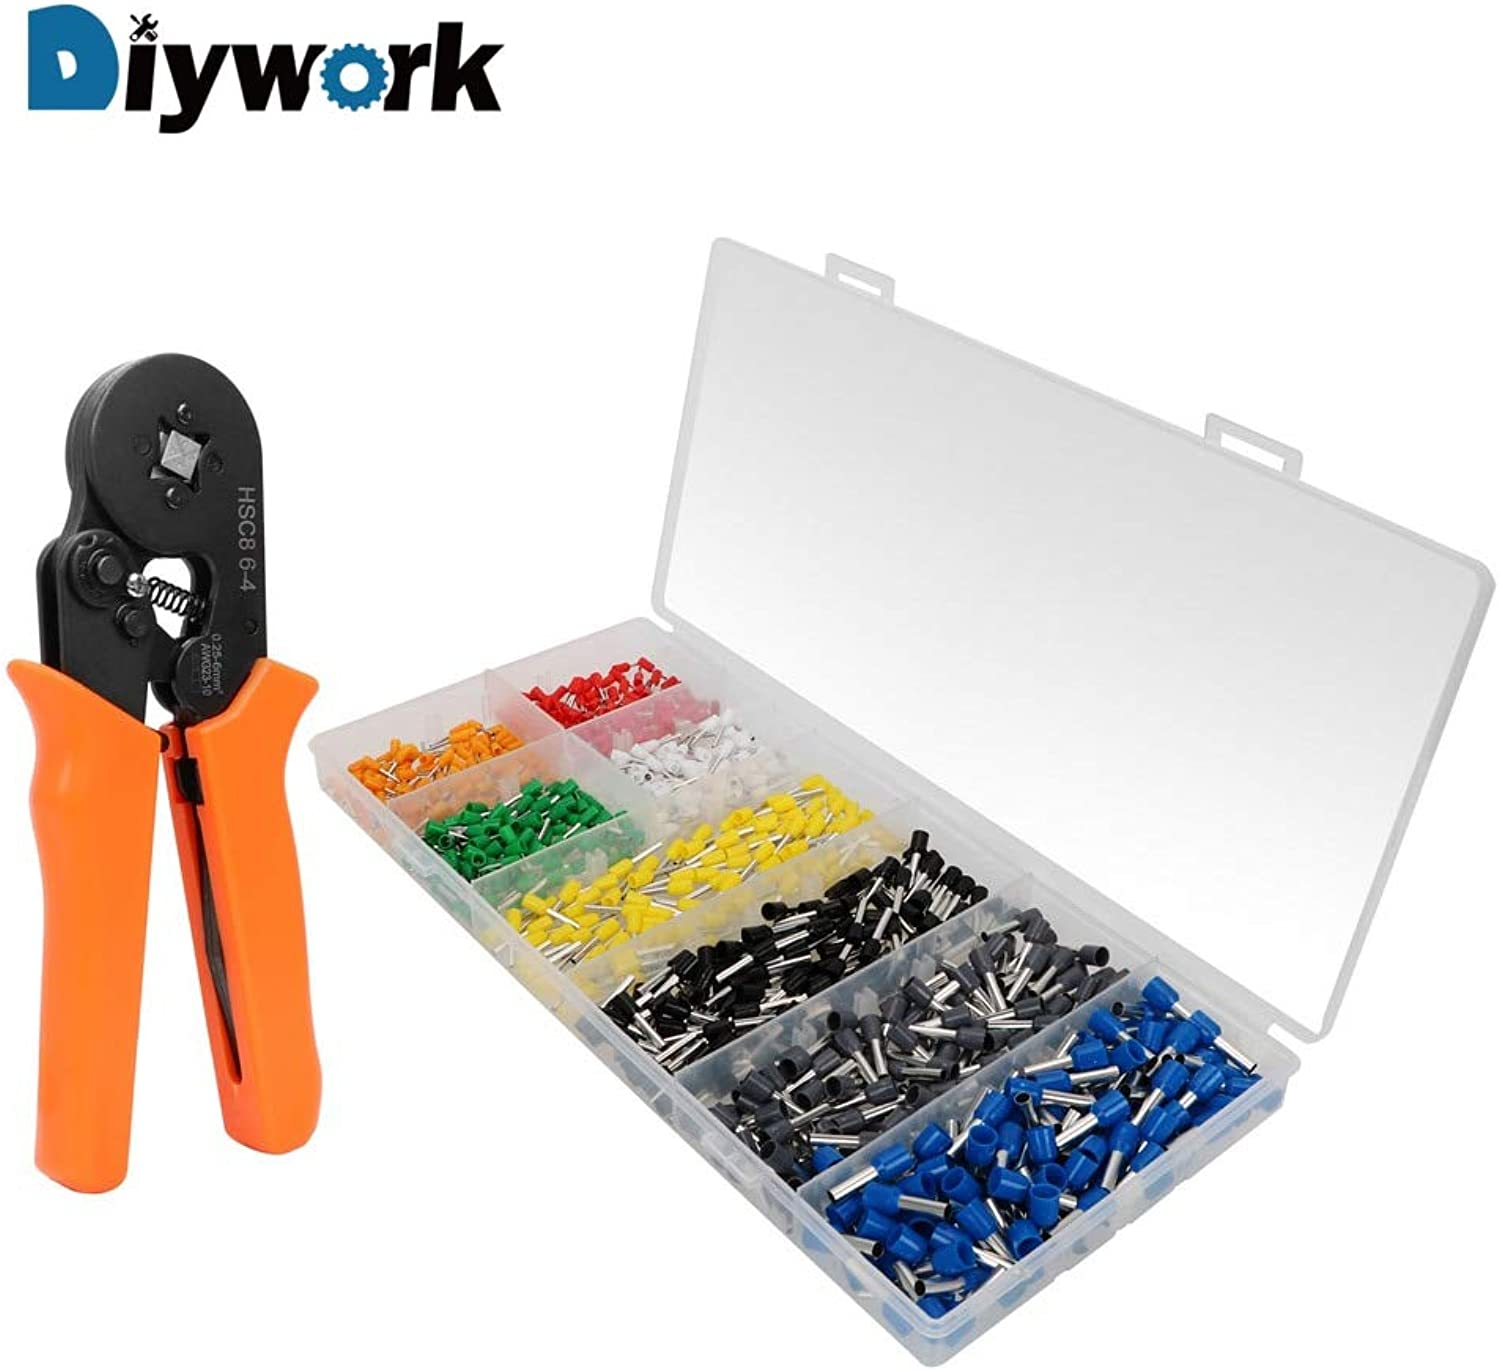 DIYWORK 800 Pcs Connector Terminal Multi Hand Tools Hand Crimping Tools Crimp Terminal Crimping Pliers Self-Adjustable